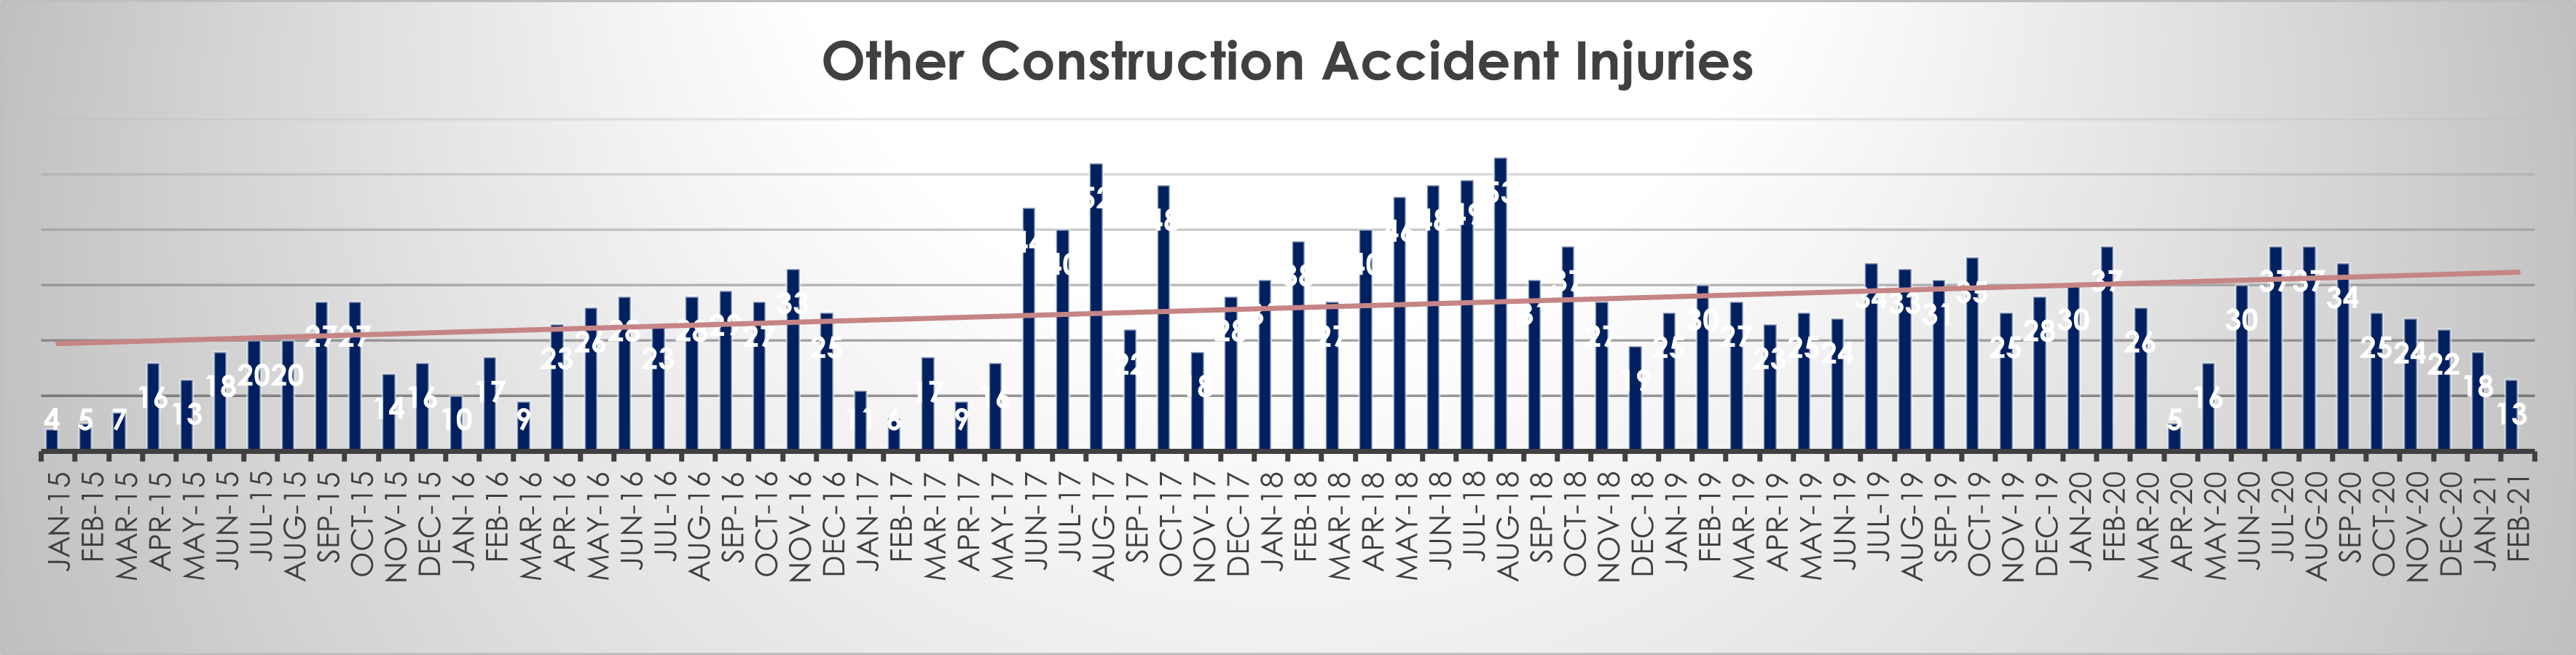 Other-construction-accident-injuries